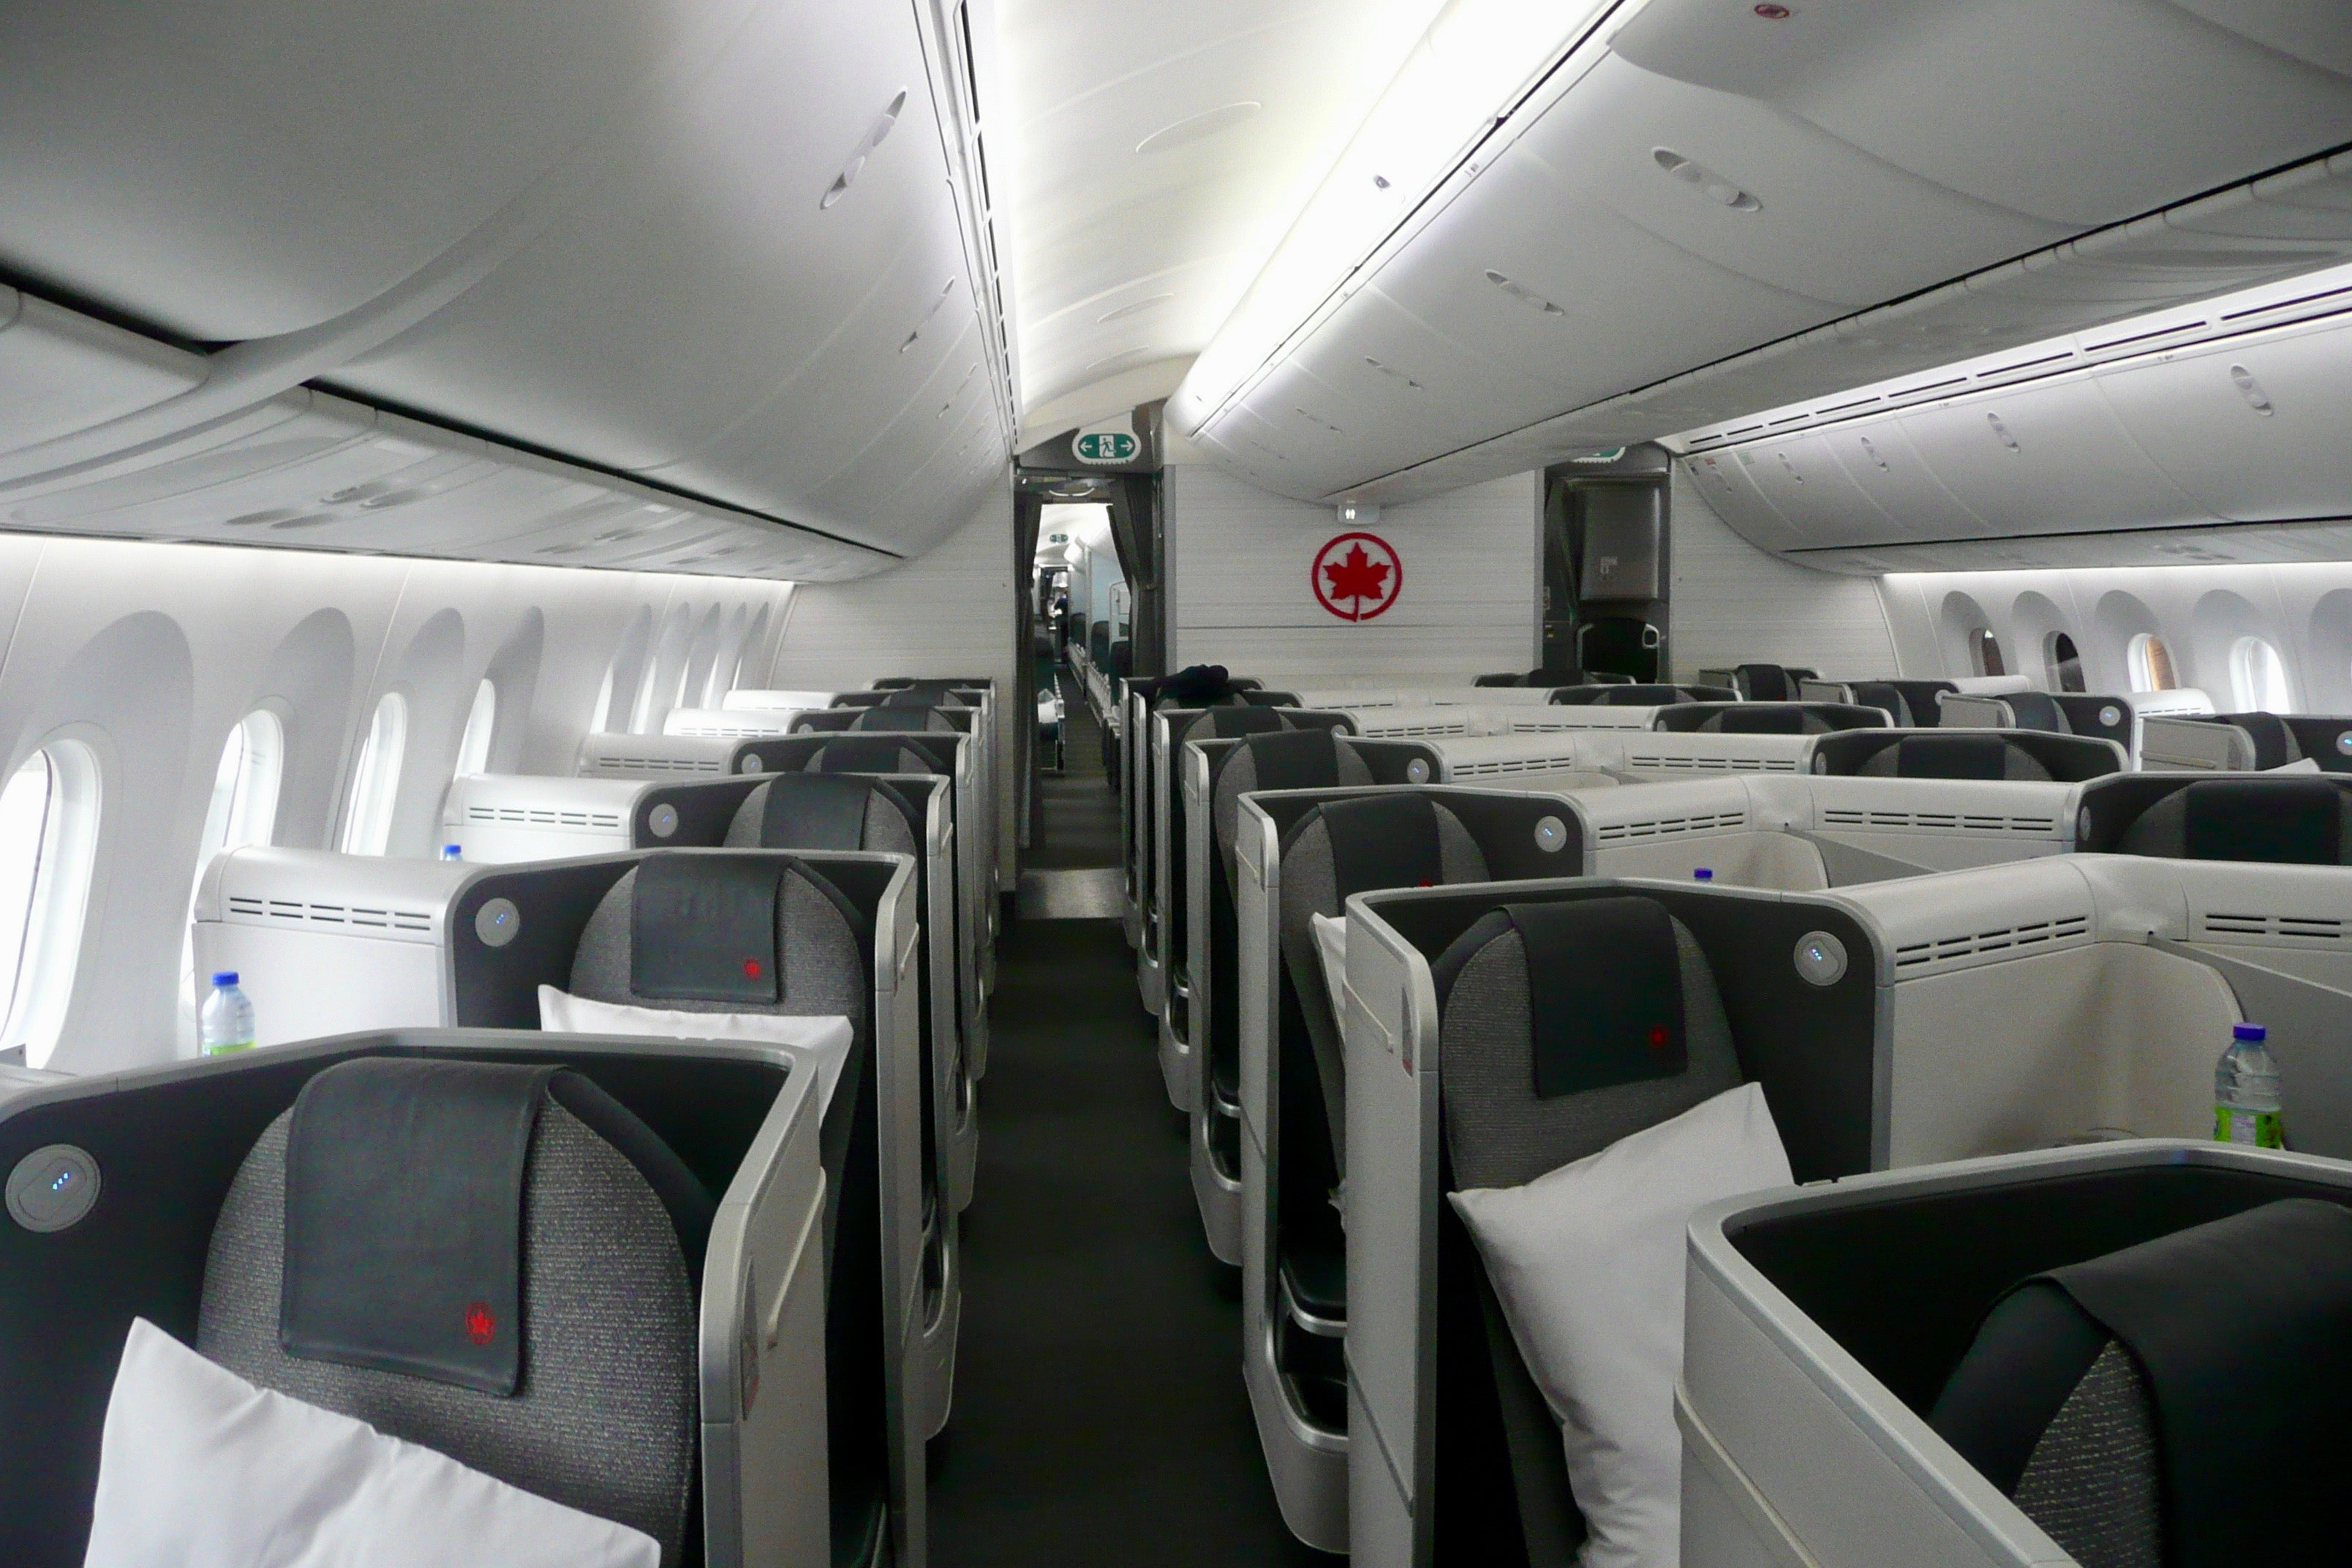 Review: Air Canada (787-9) Business Class, Tokyo to Toronto